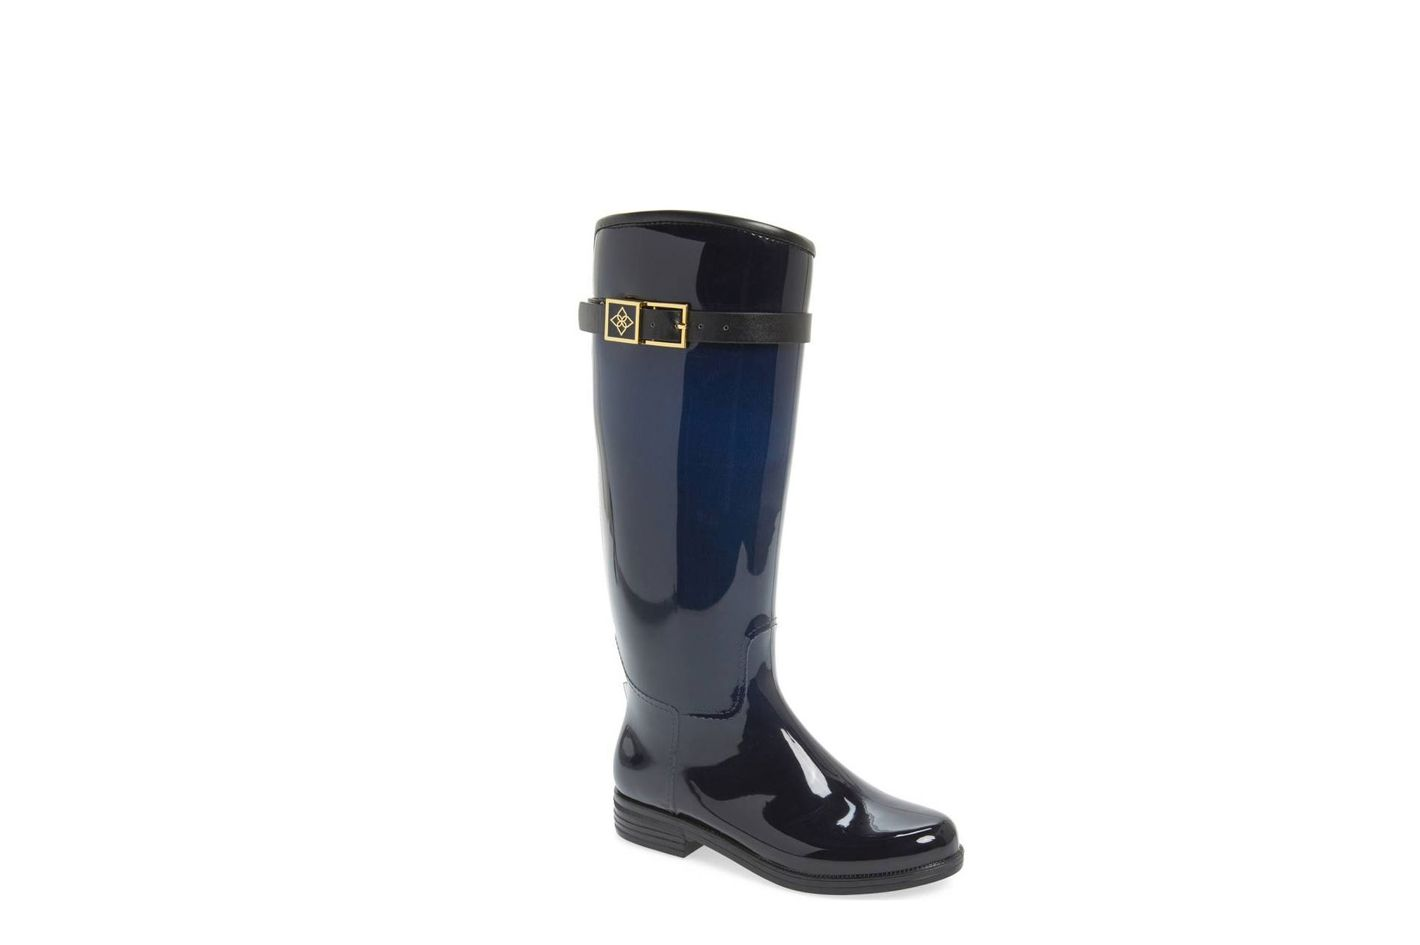 bf45733a848 The 15 Best Rain Boots for Women 2018